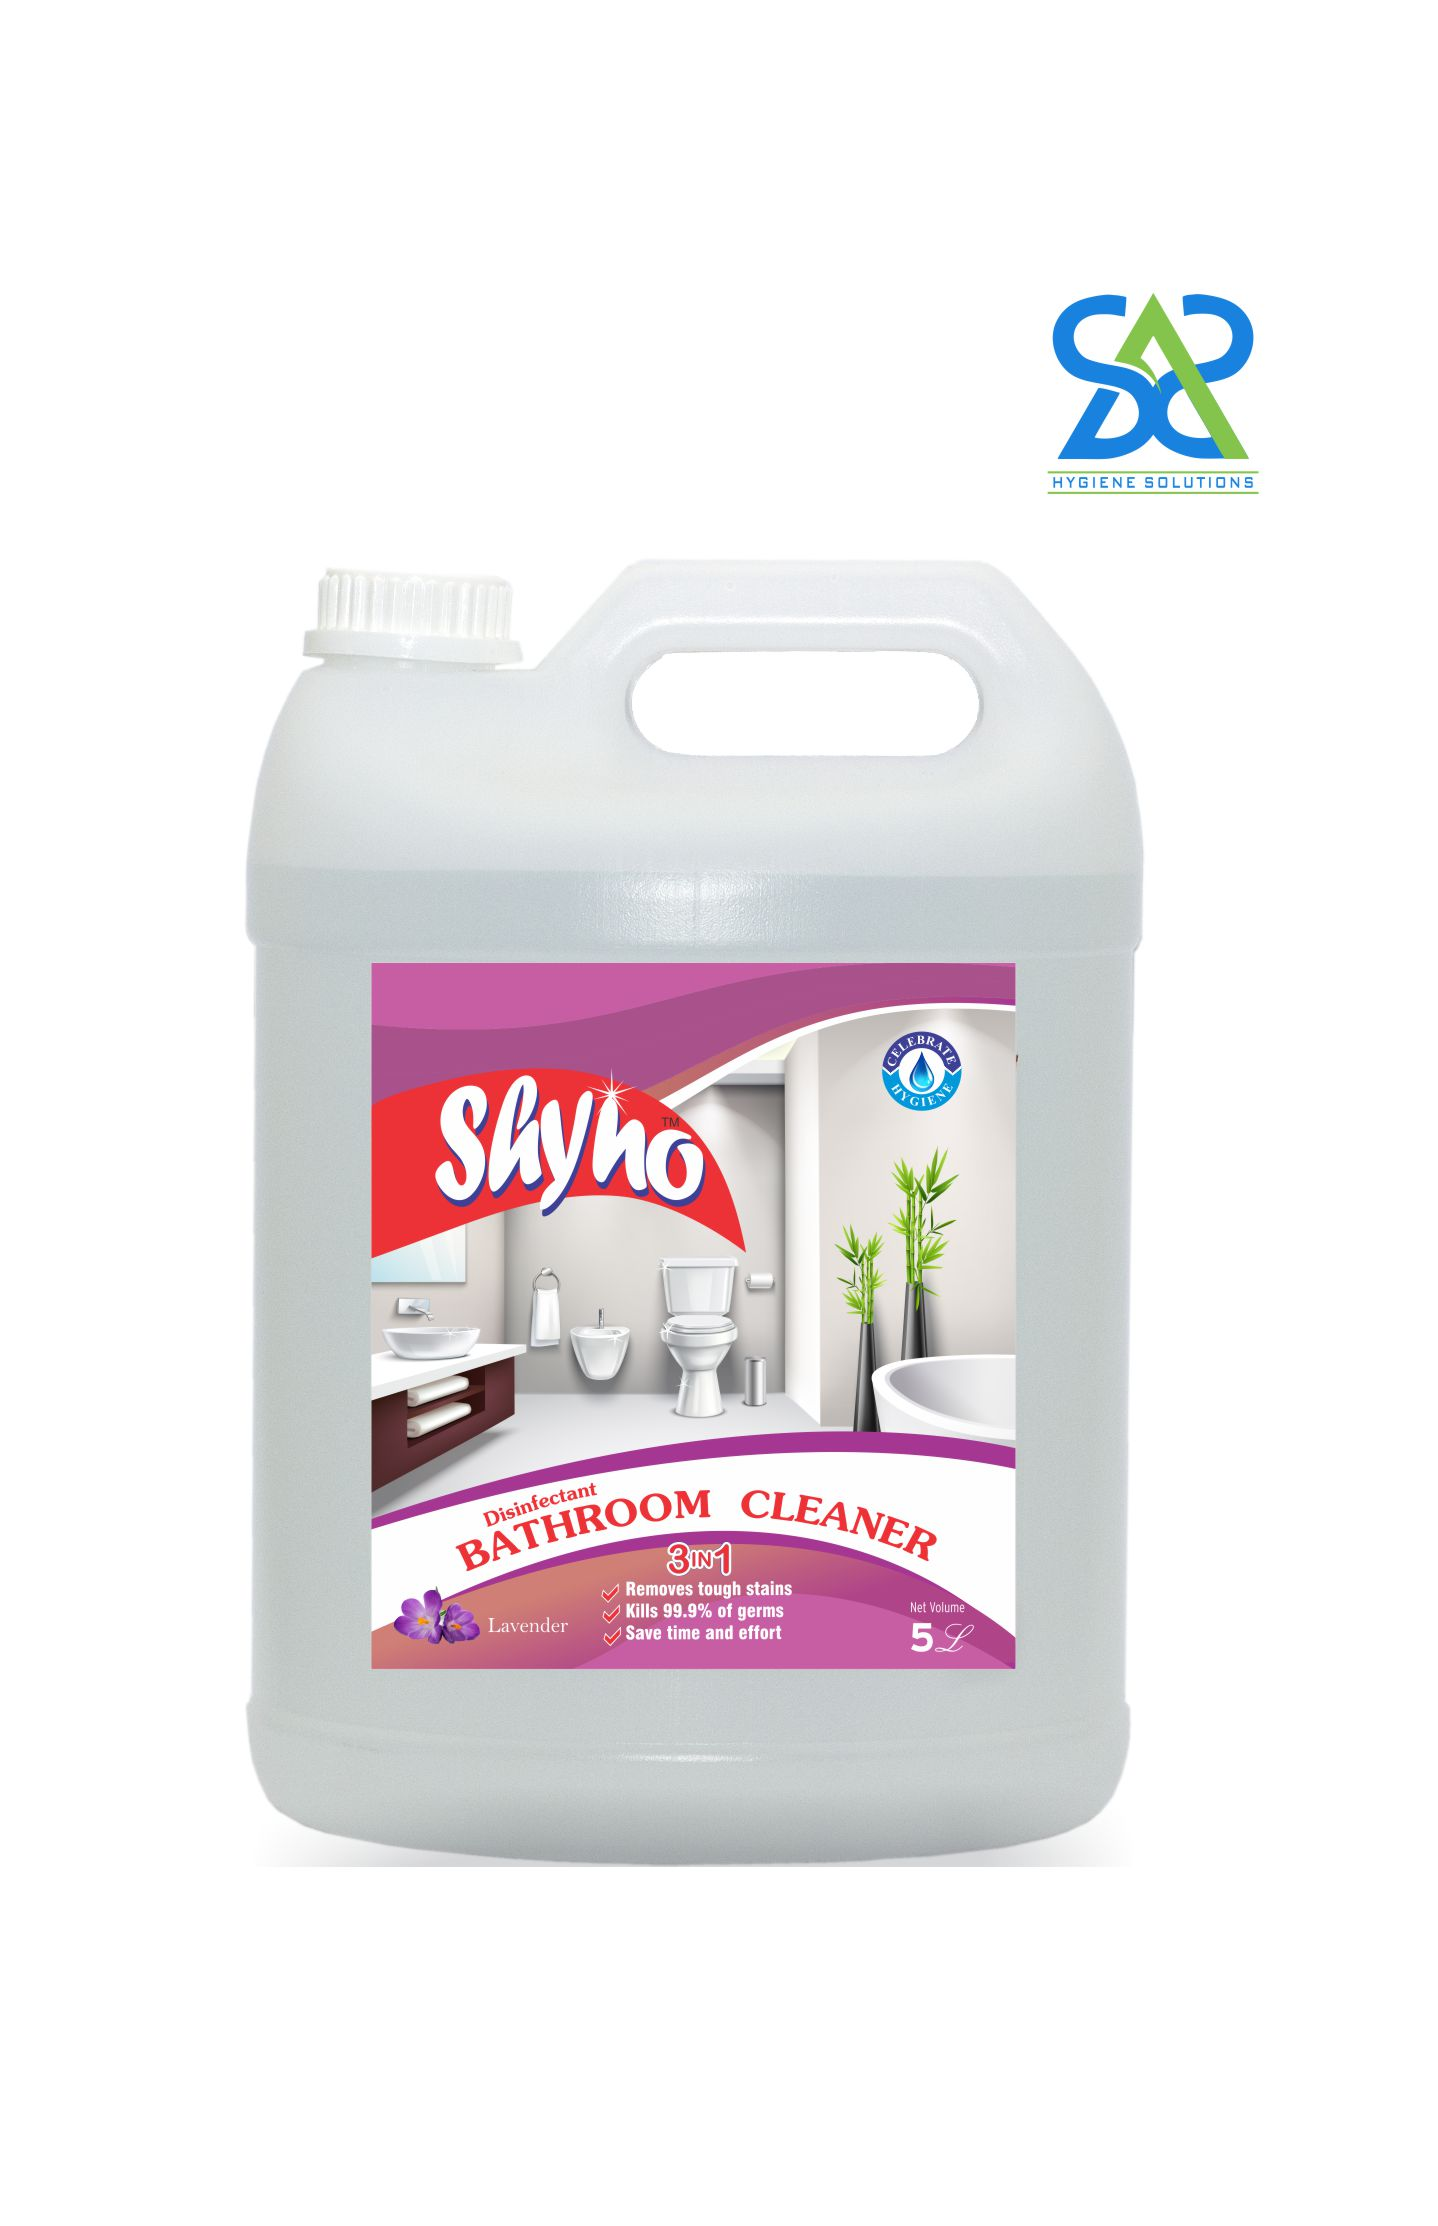 Shyno Disinfectant Bathroom Cleaner, 5 Litres -  Lavender